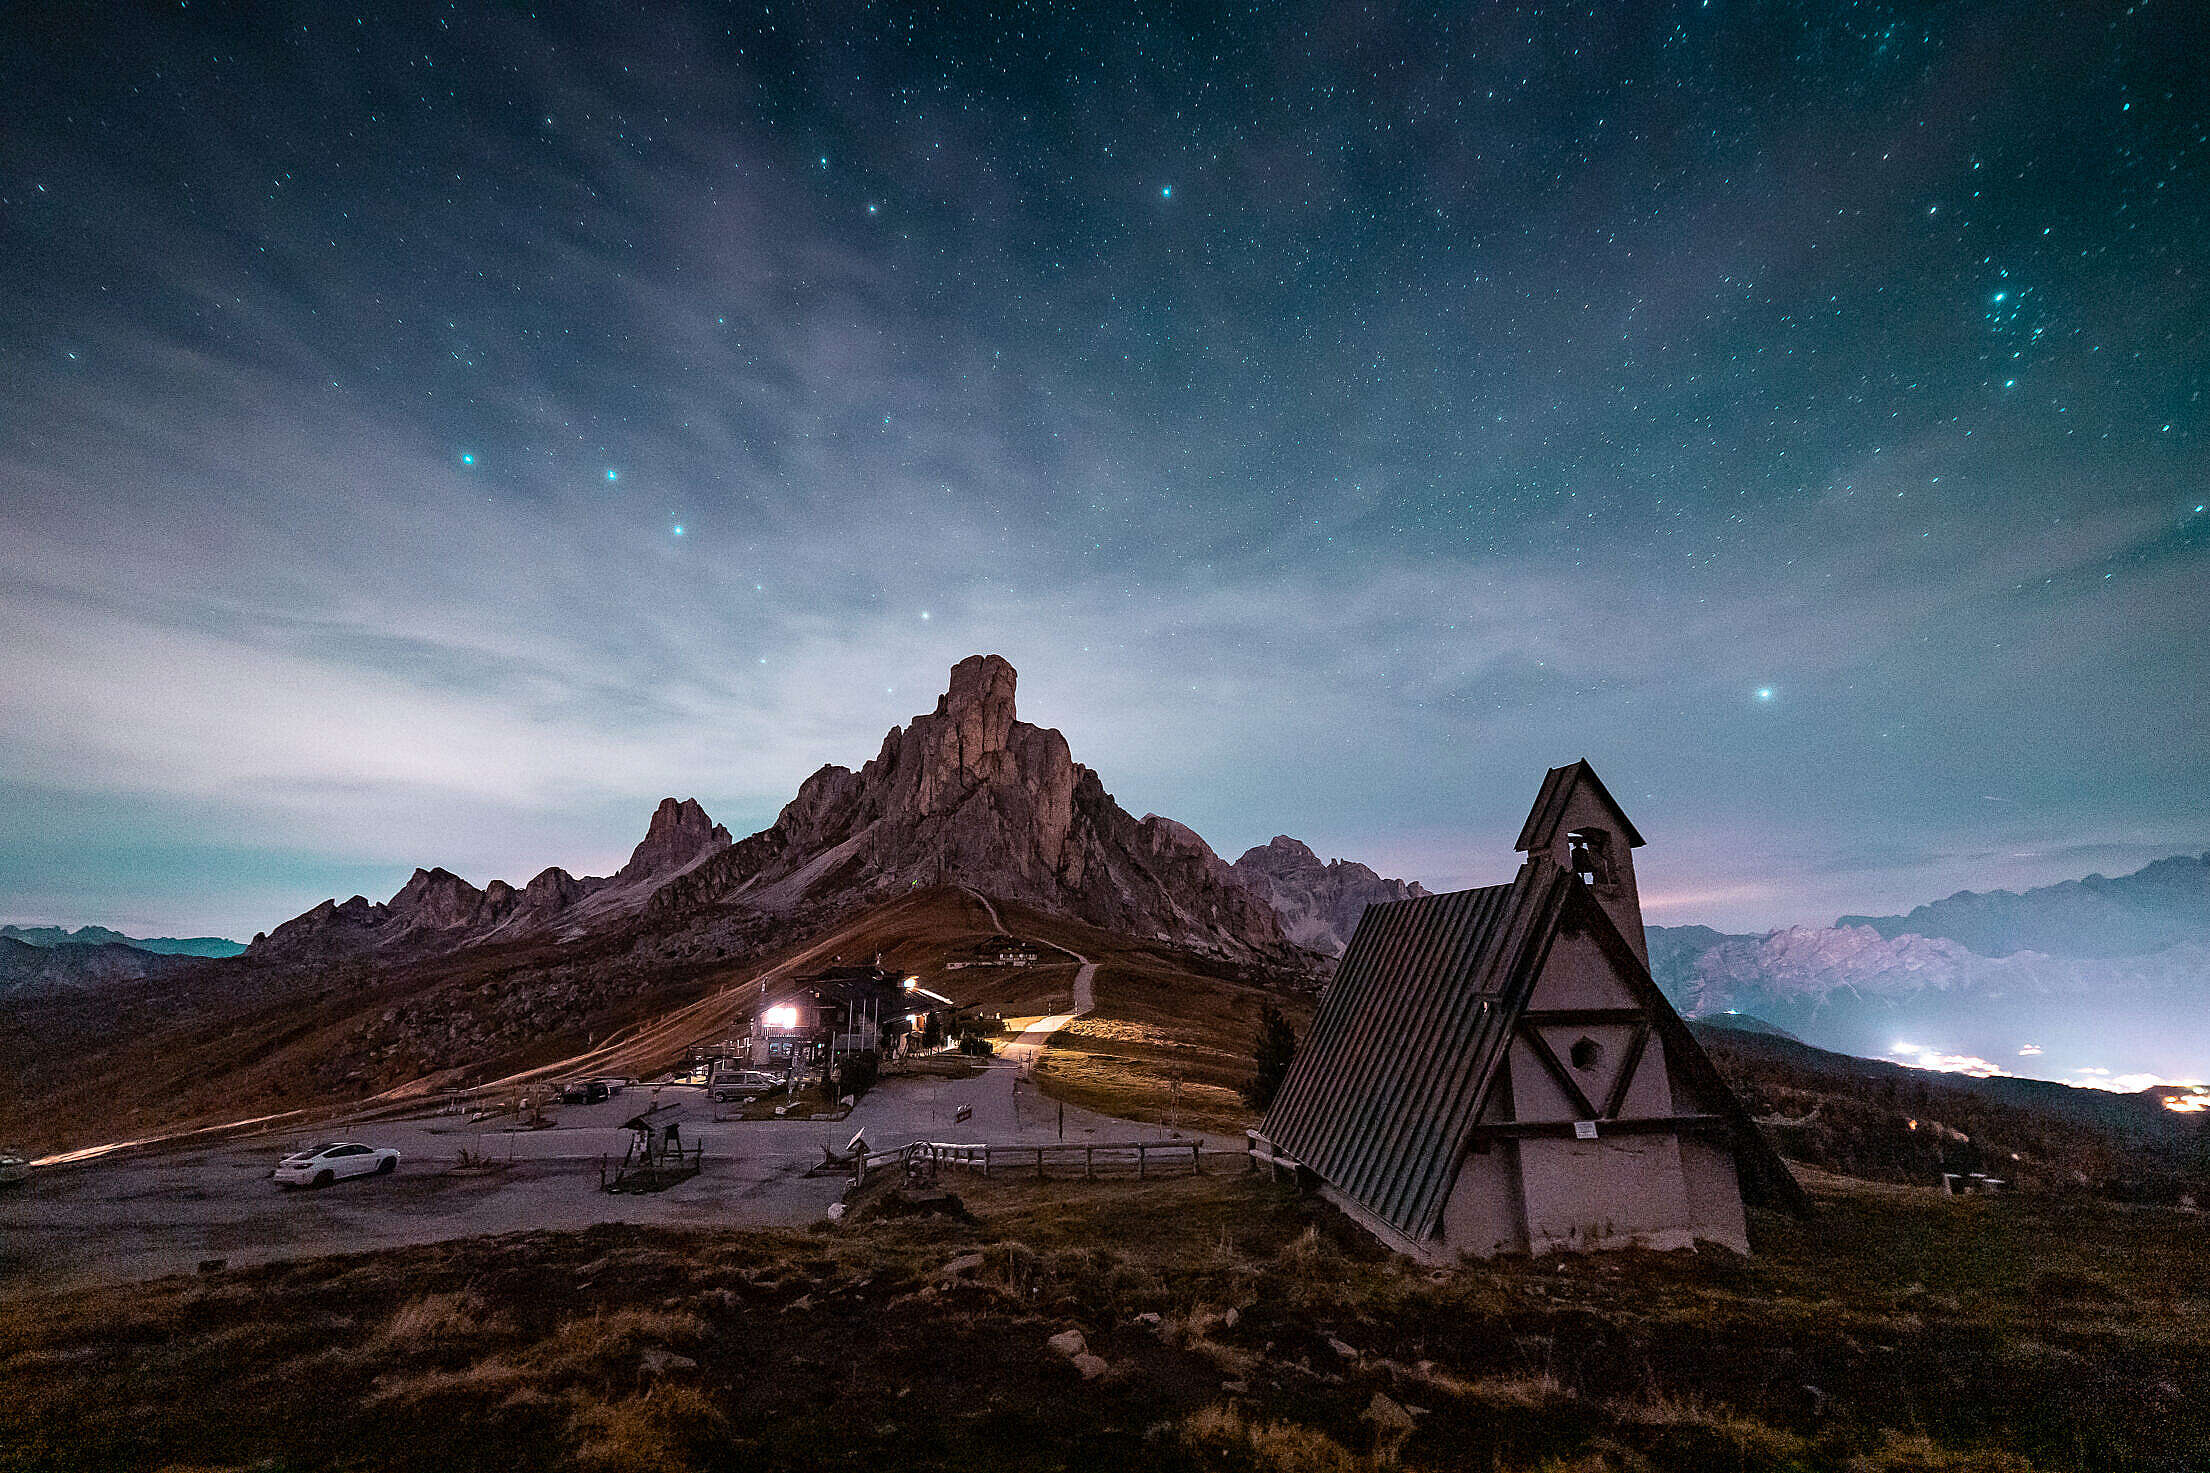 Beautiful View of a Church and a Rock Under a Night Sky Free Stock Photo